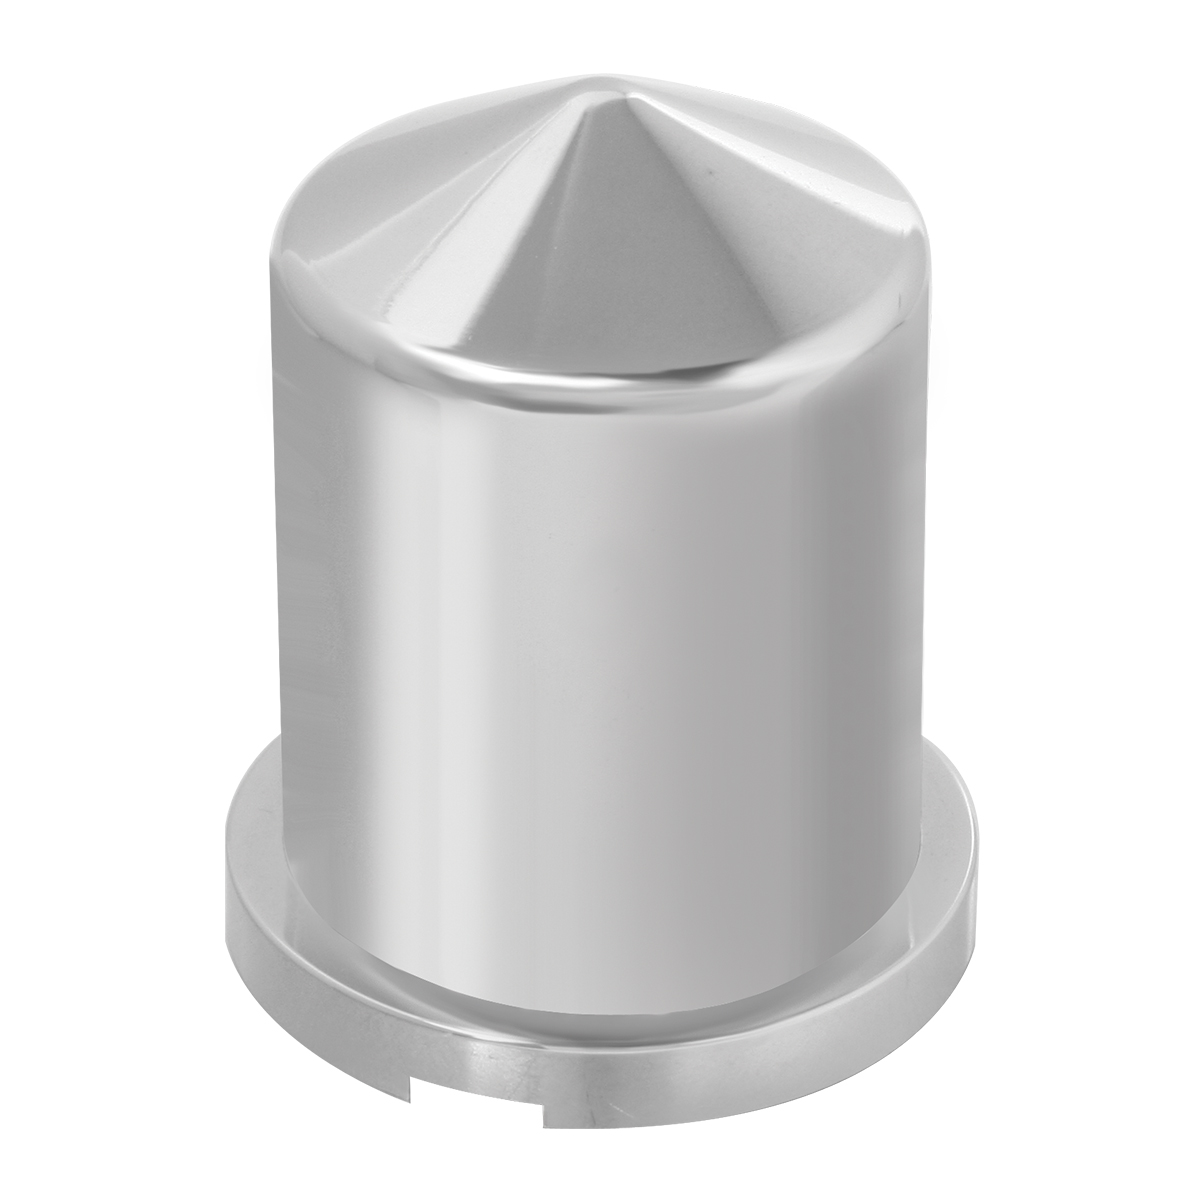 "Chrome Plastic 1 ¹∕₁₆"" & 1 ⅛"" Push-On Multi-Size Round Pointed Lug Nut Cover"